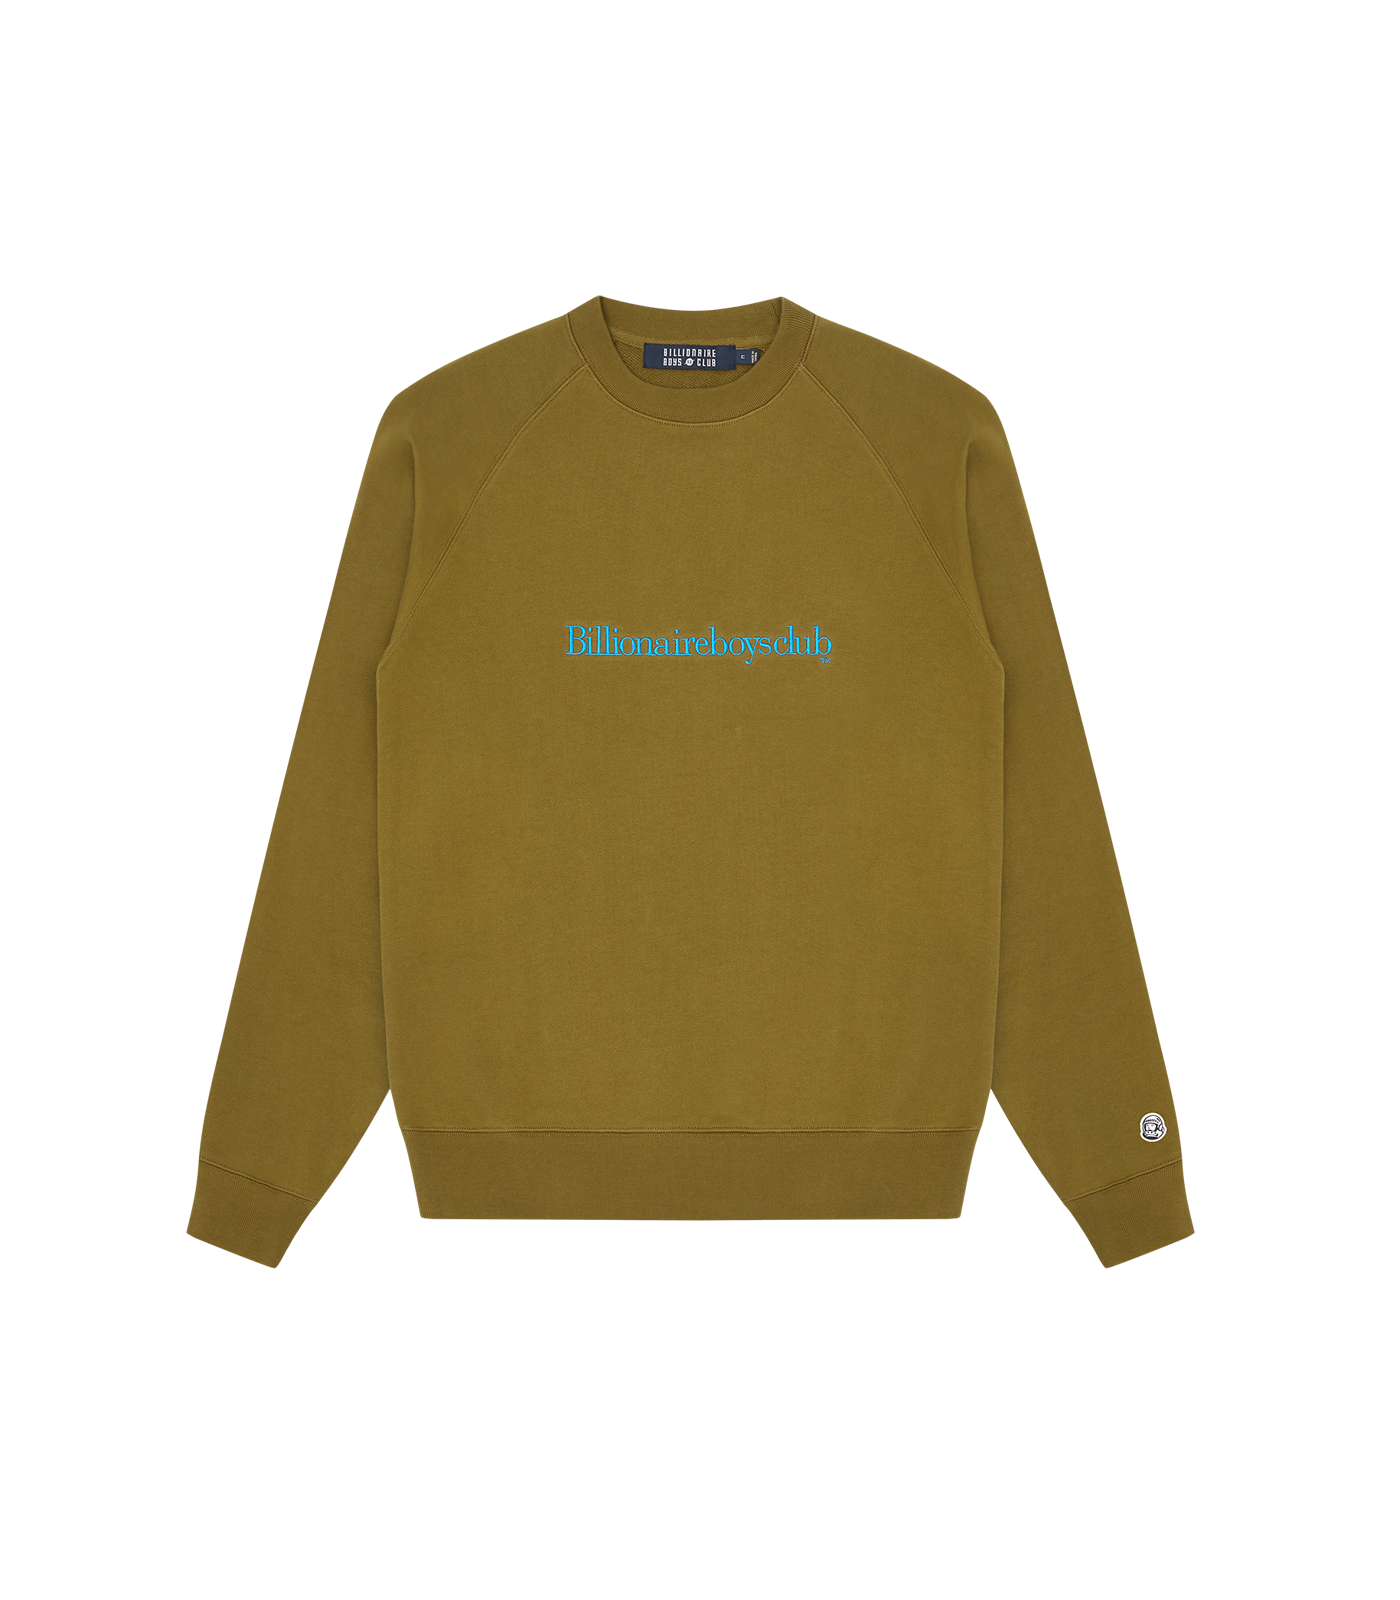 EMBROIDERED LOGO CREWNECK - KHAKI